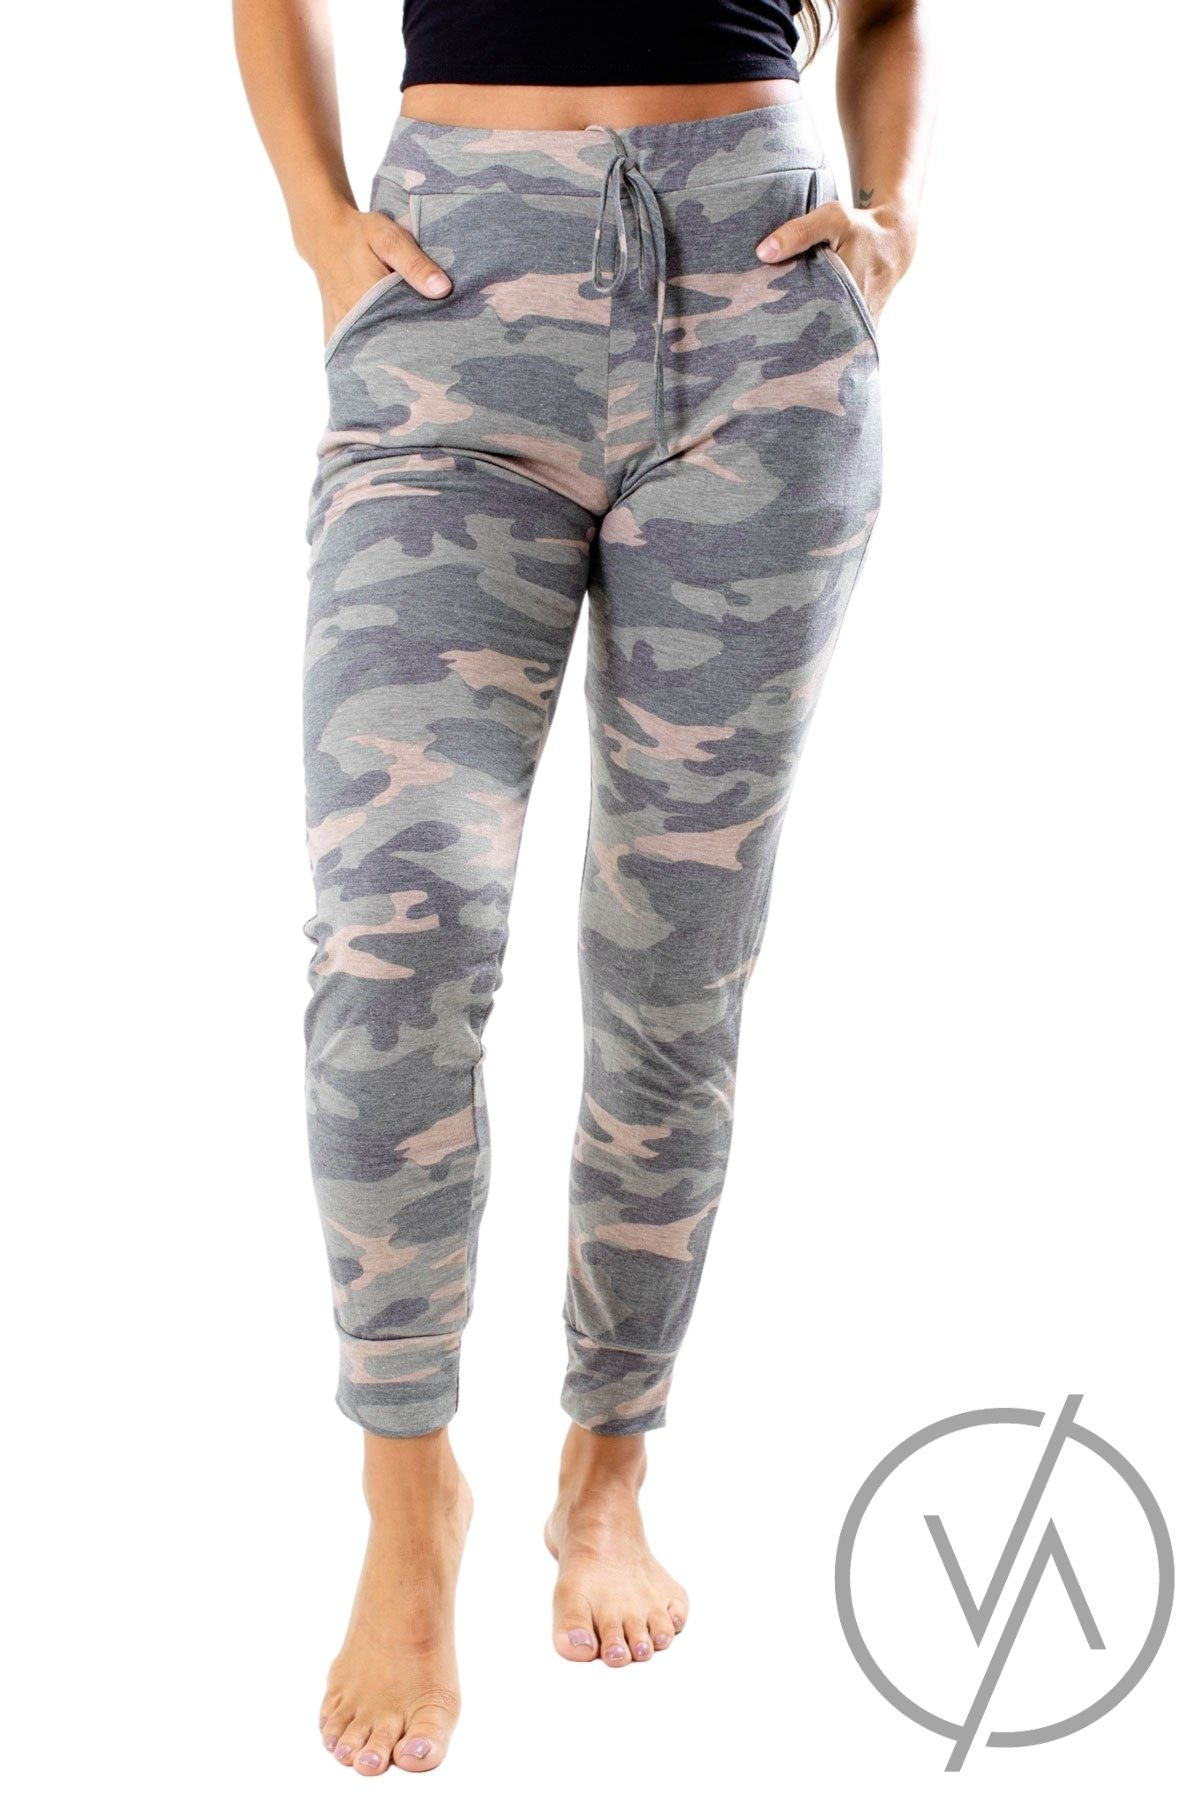 Green Camo Print Athletic Joggers for Women